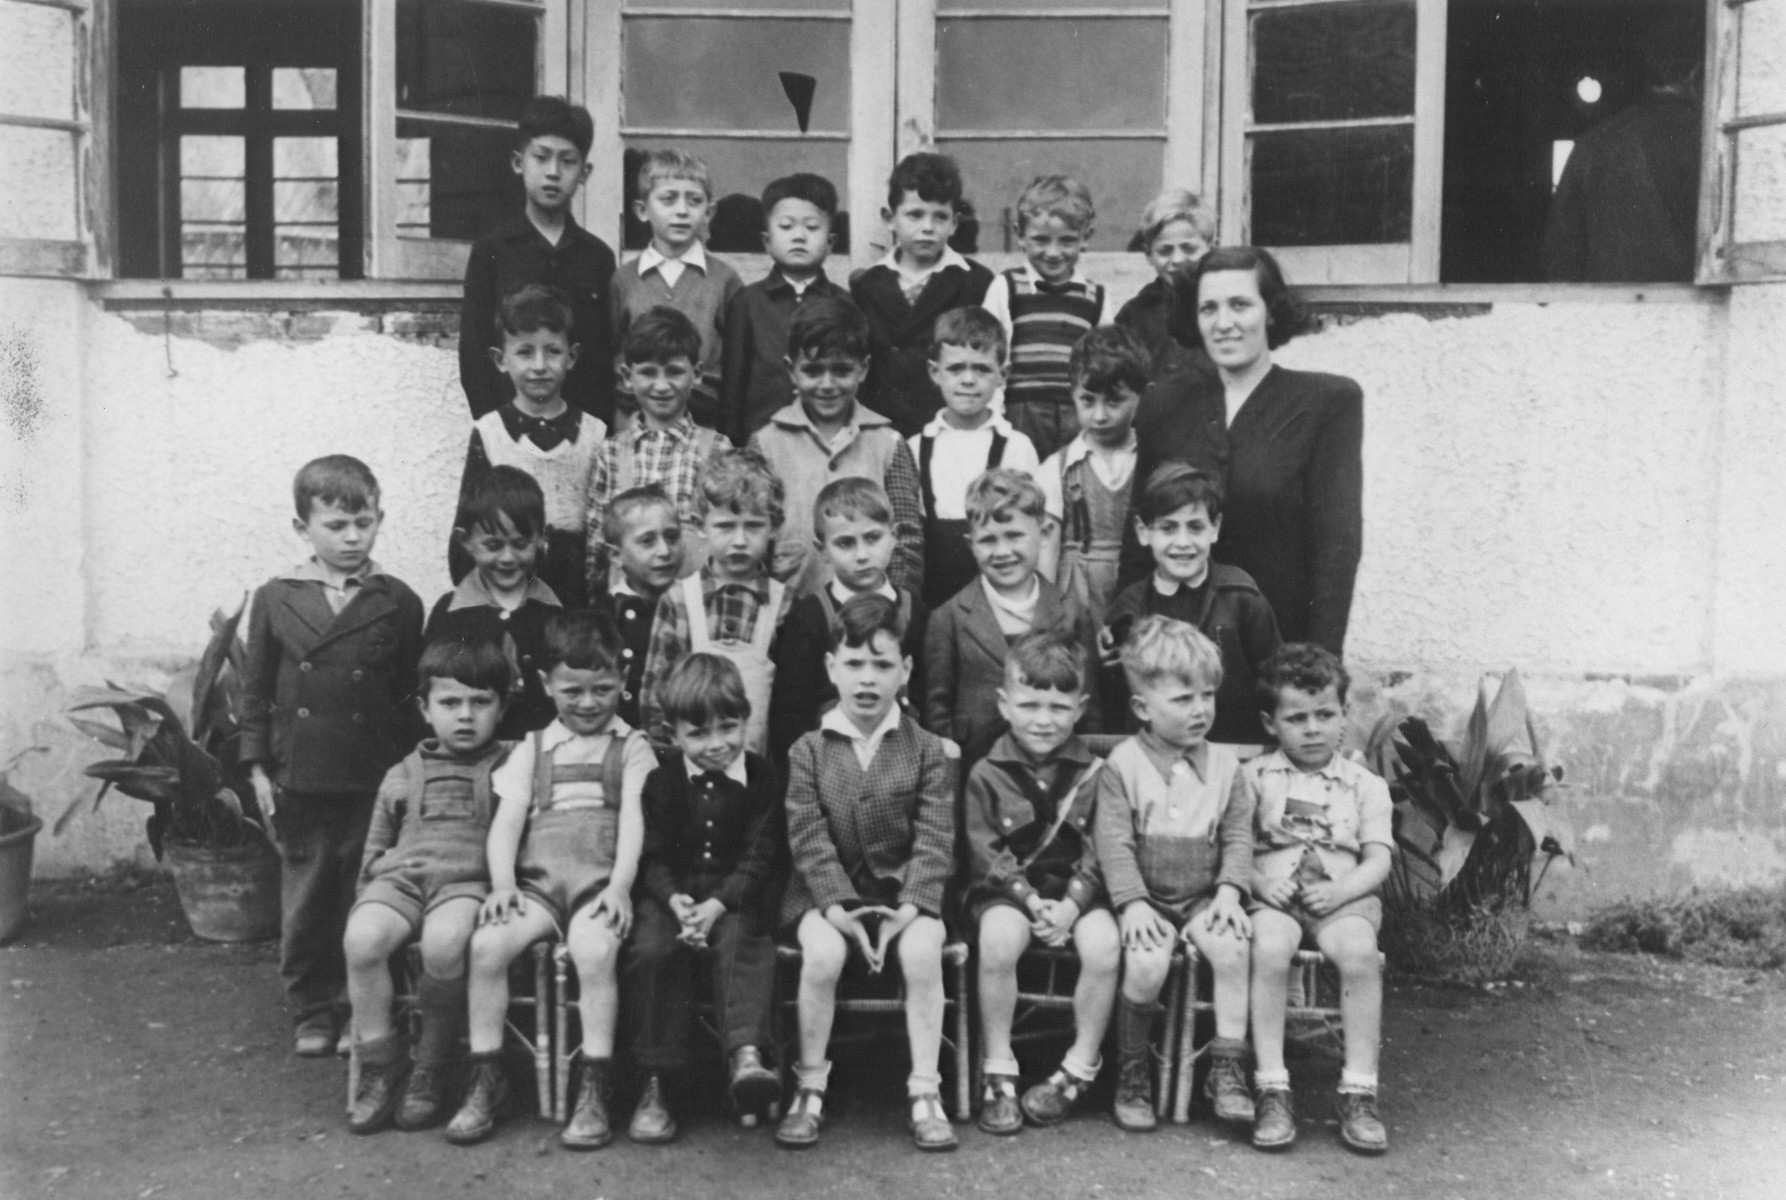 Boys in the Shanghai Jewish Youth Association.  The teacher, standing on the right, is Felicia Lewinski.  The second child from the left in the middle row is Manfred Worm.  The boy in the second row, fourth from the left is George Dan Lichtenstein.